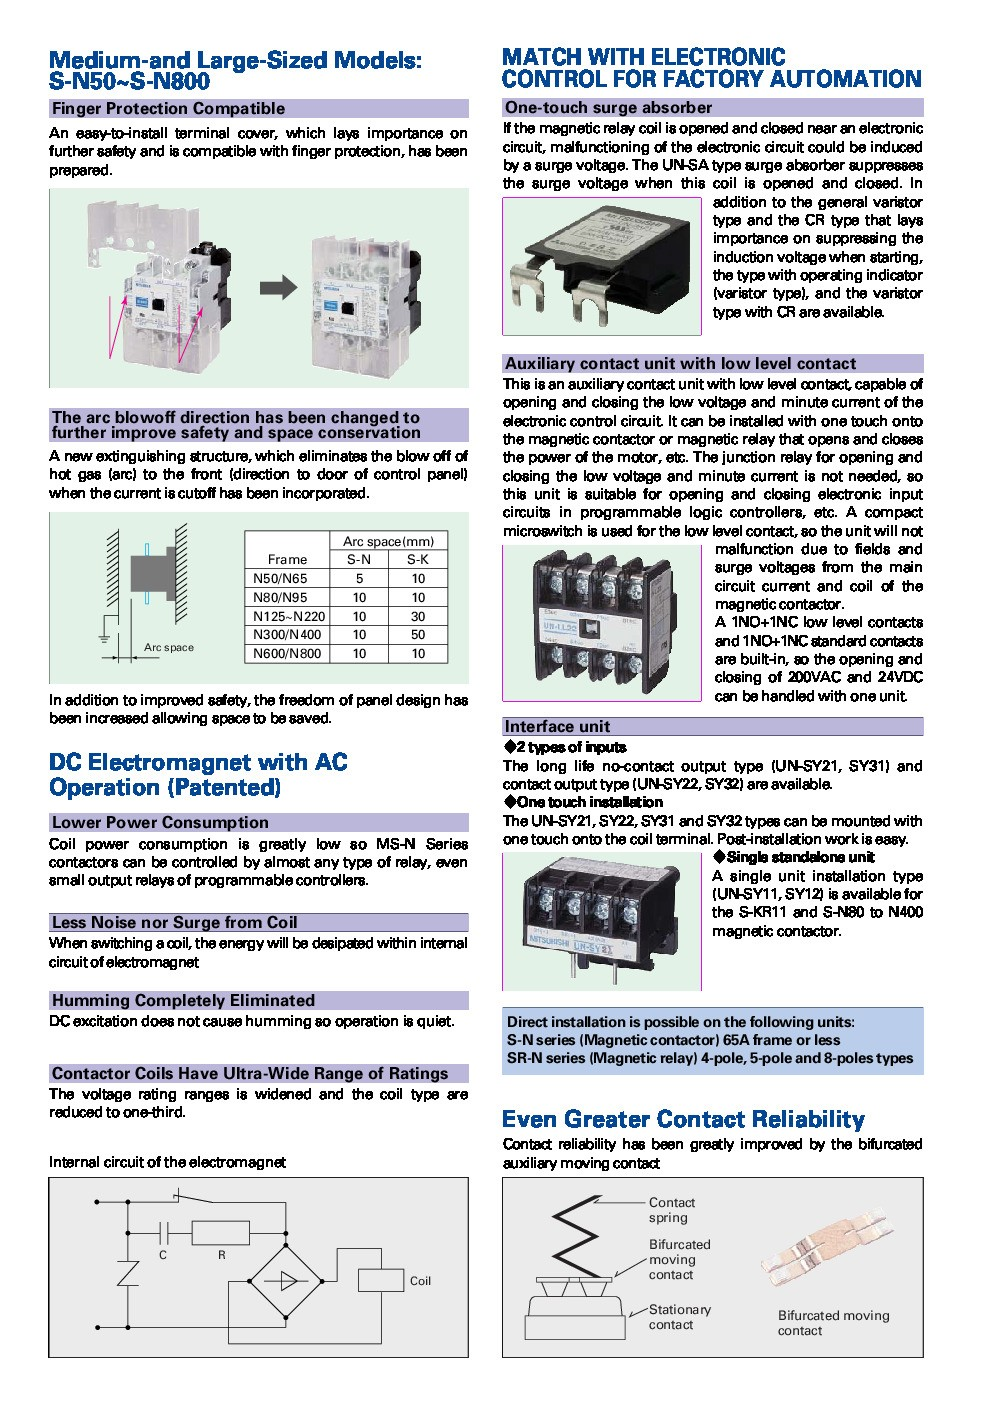 ACCESSORIES PANEL & BOX PANEL, MAGNETIC MOTOR STARTERS & CONTACTORS MITSUBISHI, MS-N Series - Medium & Large Sized Models